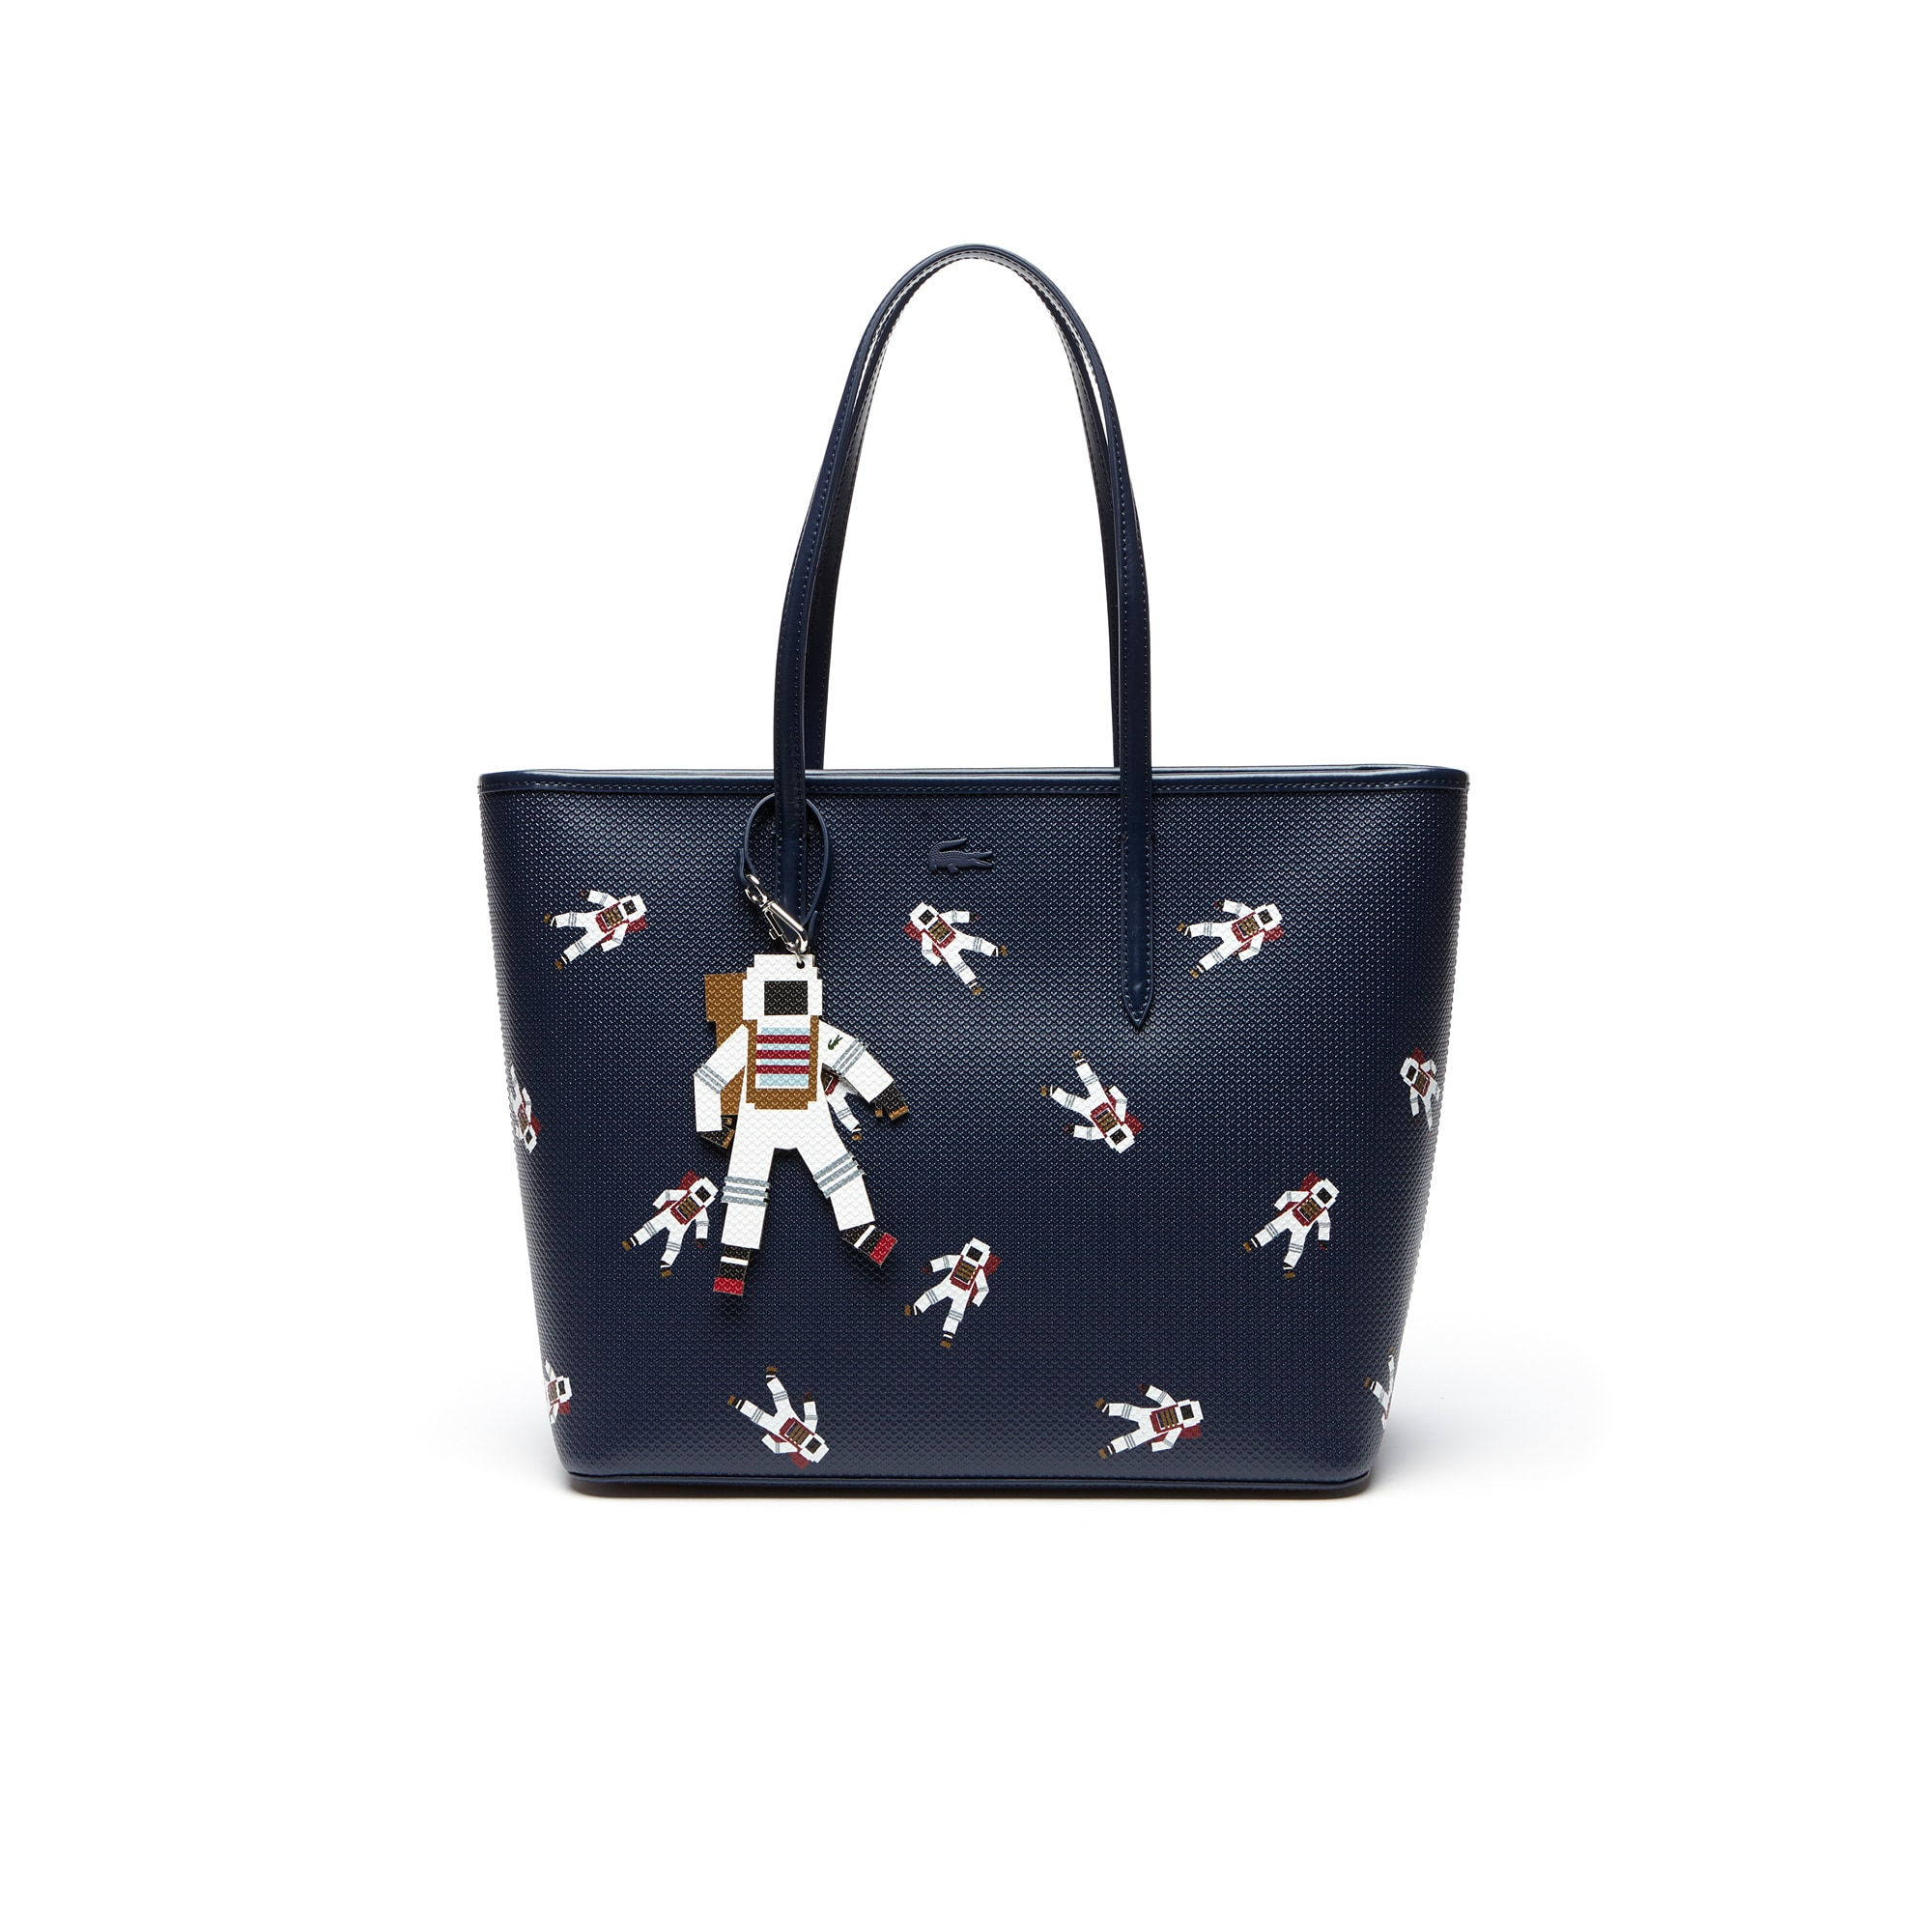 Women's Chantaco Zippered Astronaut Print Leather Tote Bag